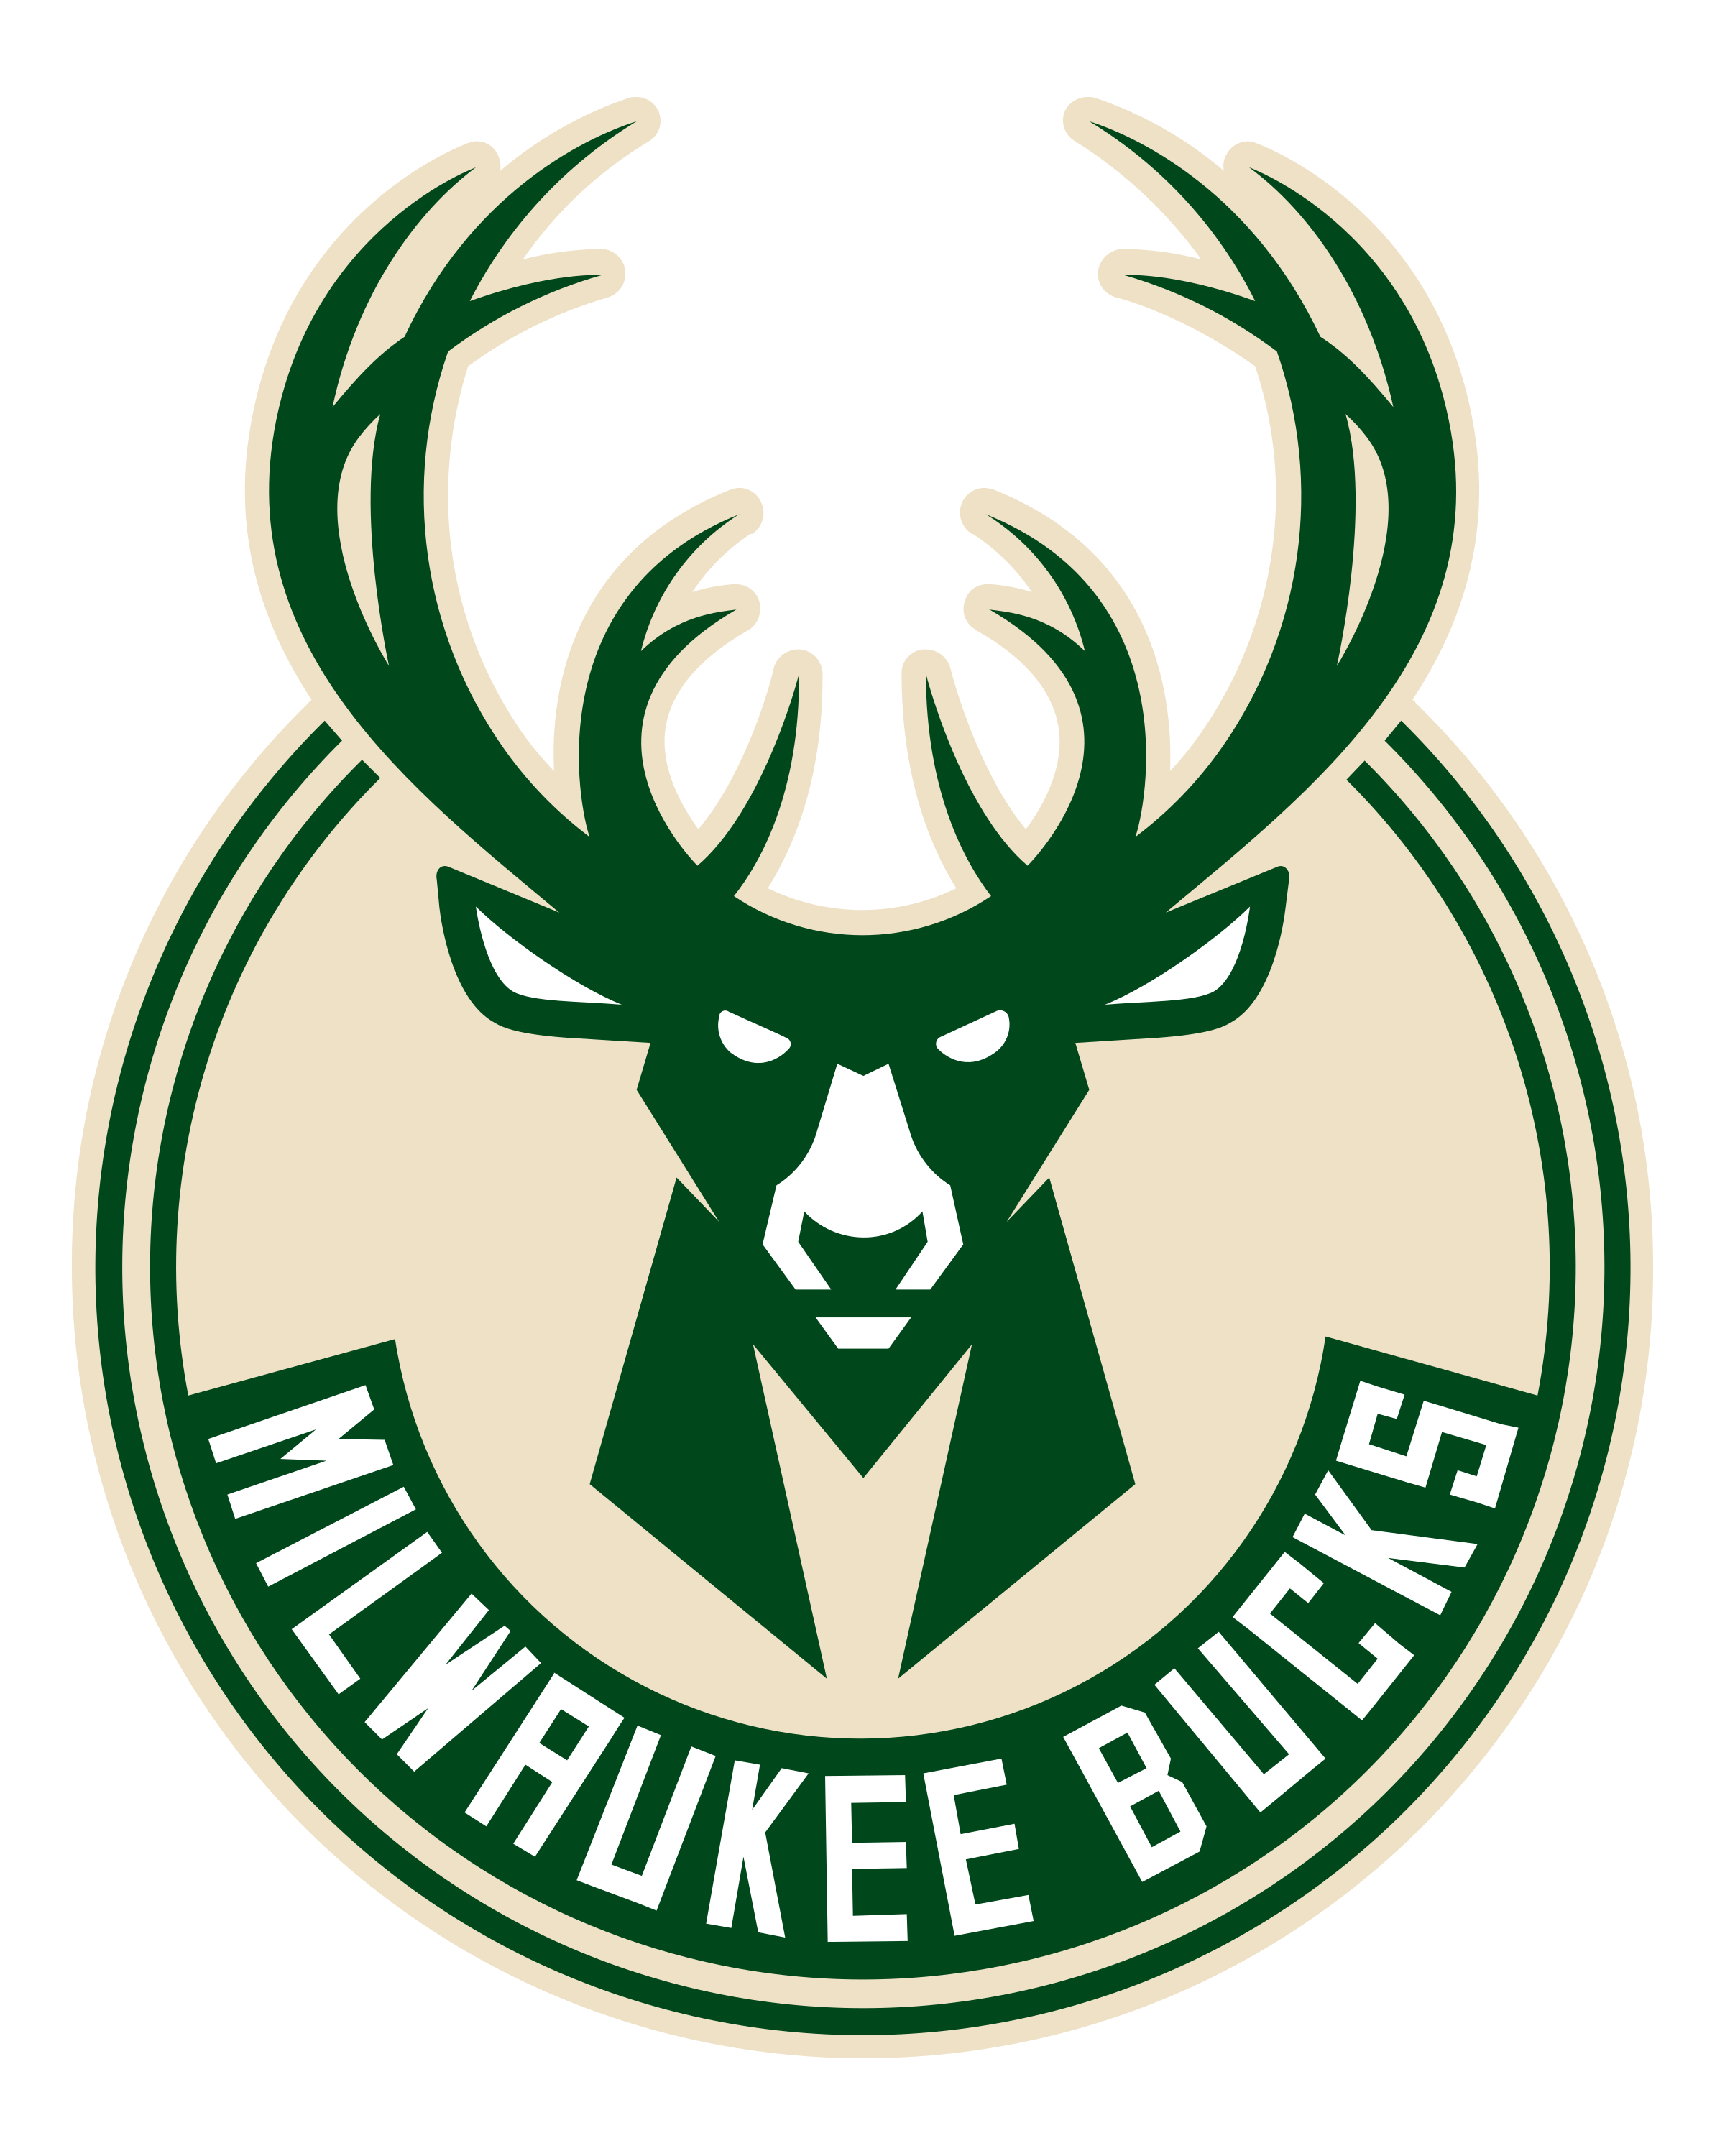 Transparent emblem official. Collection of free buck